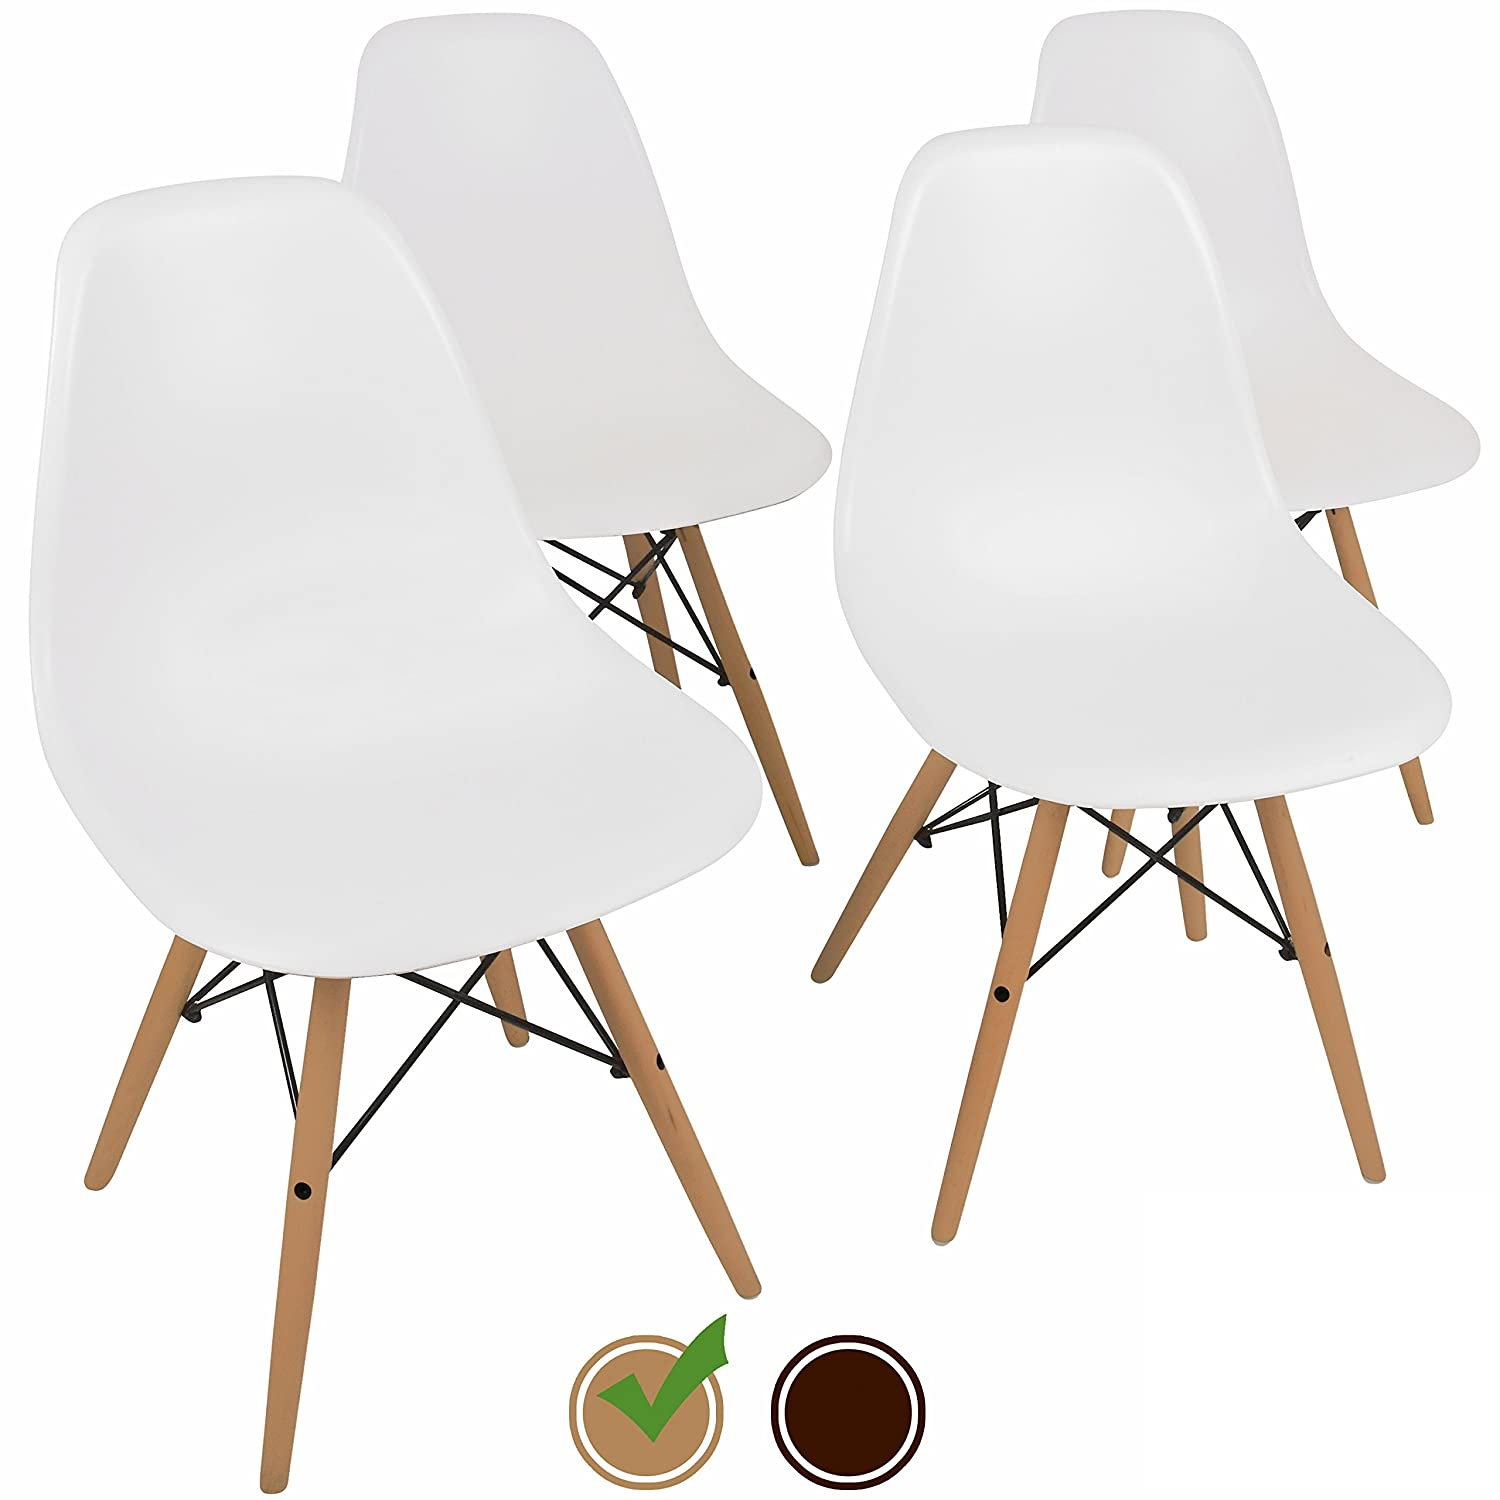 Urbanmod mid century style urban easy assemble furniture with ergoflex abs plastic and one wipe wonder cleaning comfortable dining meets 5 star modern